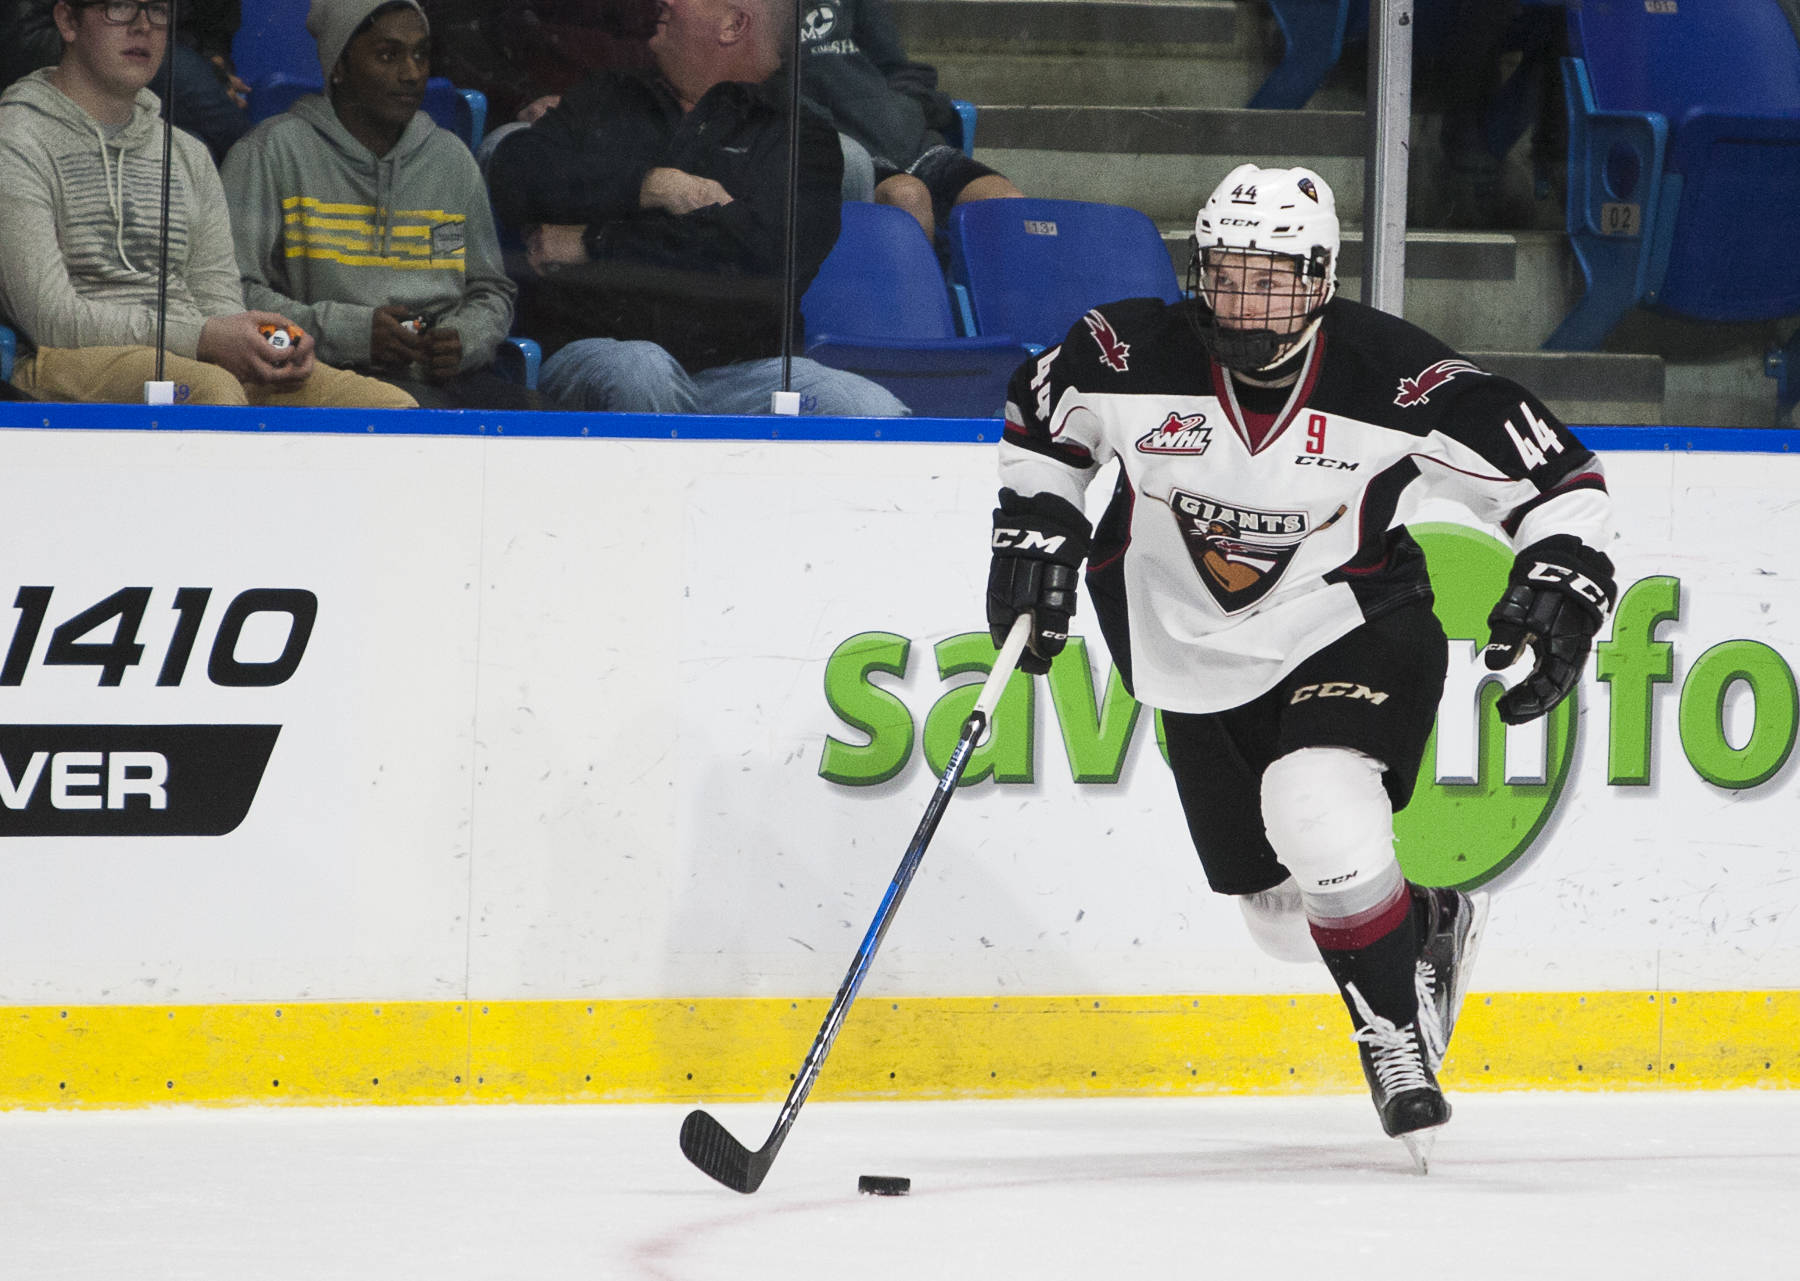 Defenceman Bowen Byram is hoping to make a big impact for the Vancouver Giants in his rookie season. CJ Relke Vancouver Giants